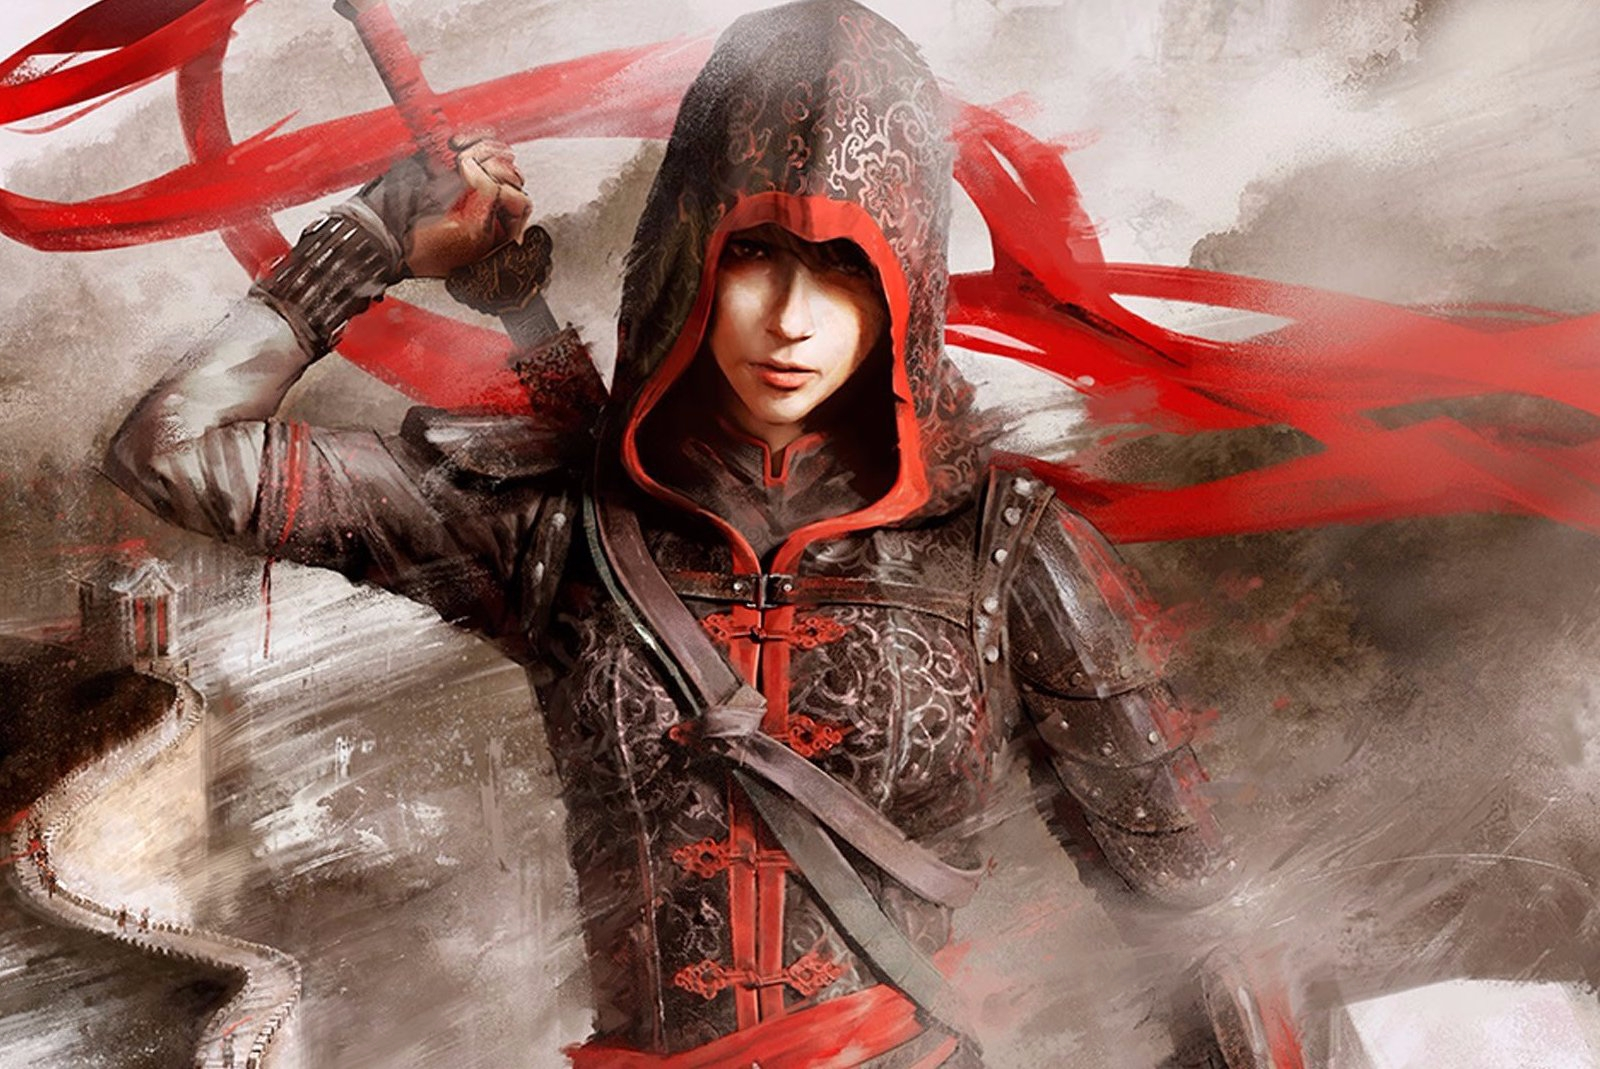 Análisis de Assassin's Creed Chronicles: China